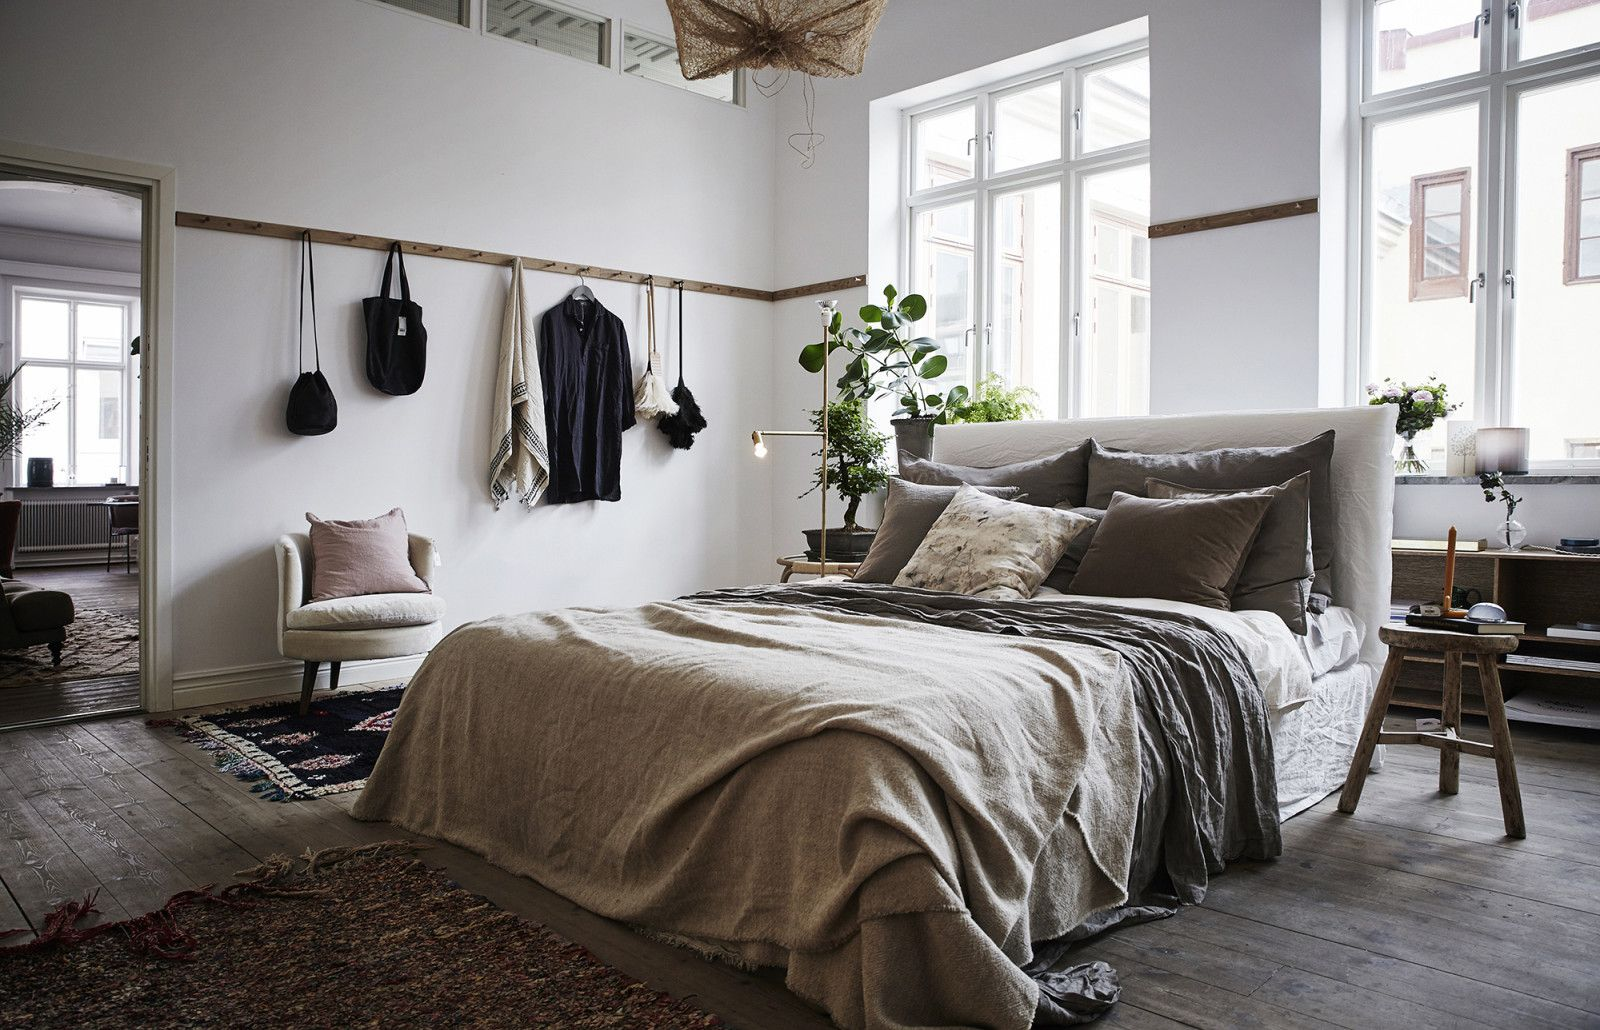 Artilleriet Journal | Artilleriet Studio | Bedroom | Pinterest